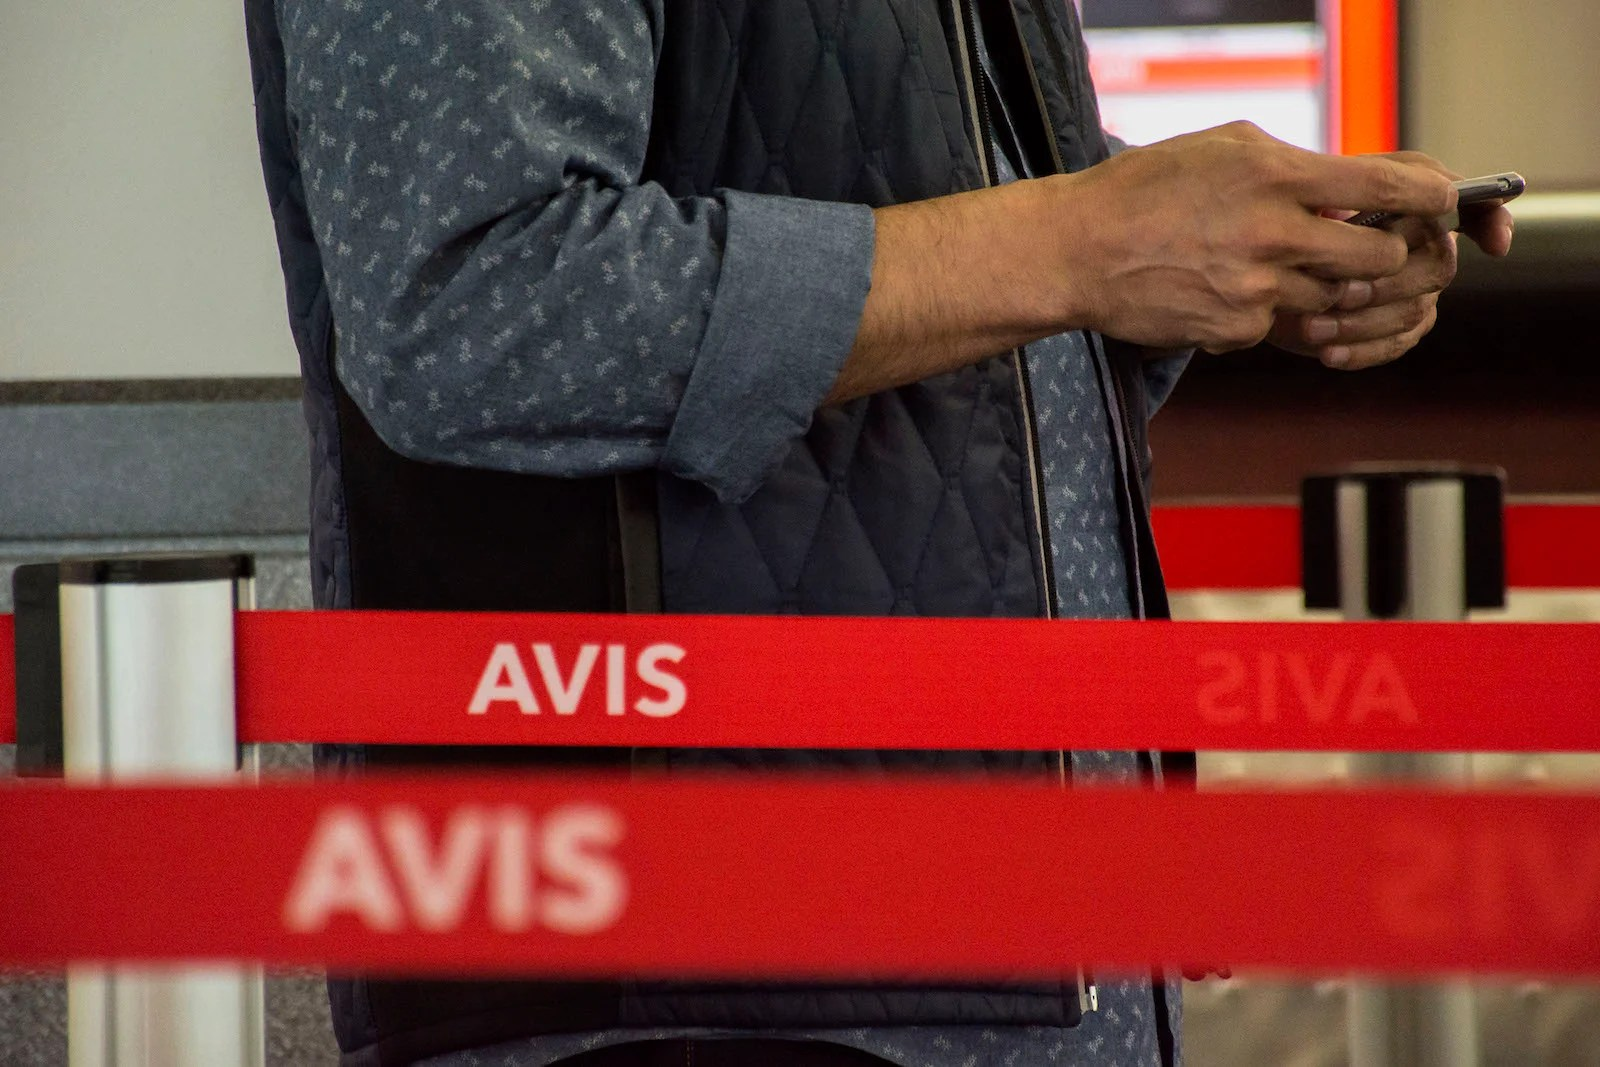 Me Touch Unlimited Avis how my rental went from $0 to $1,200 — reader mistake story